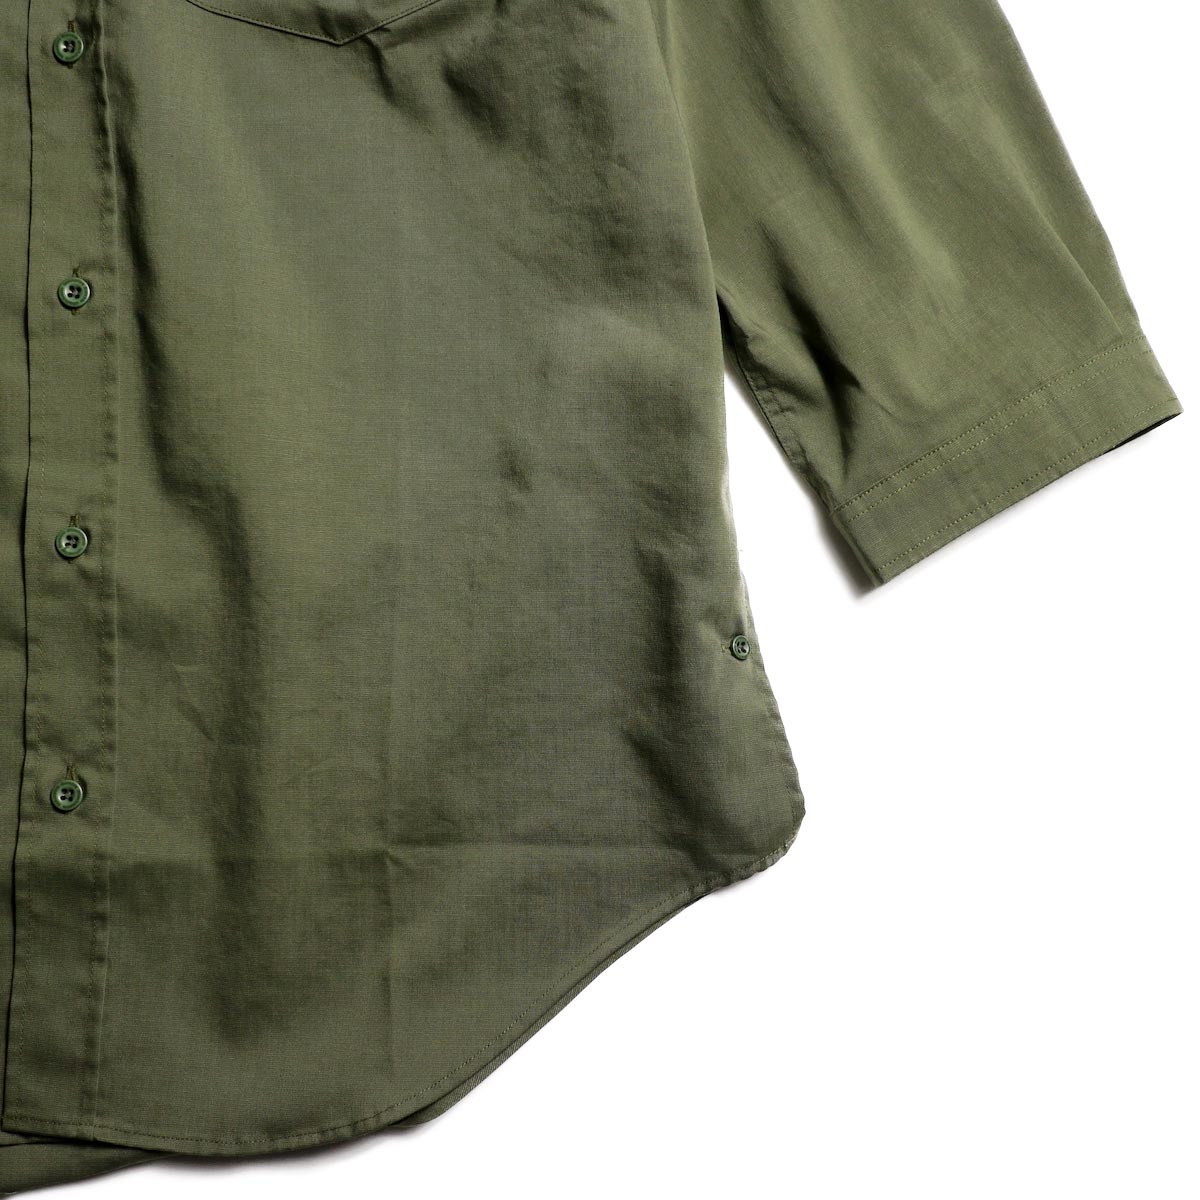 nonnative / OFFICER SHIRT Q/S RELAXED FIT P/L WEATHER STRETCH COOLMAX® (Olive)袖、裾